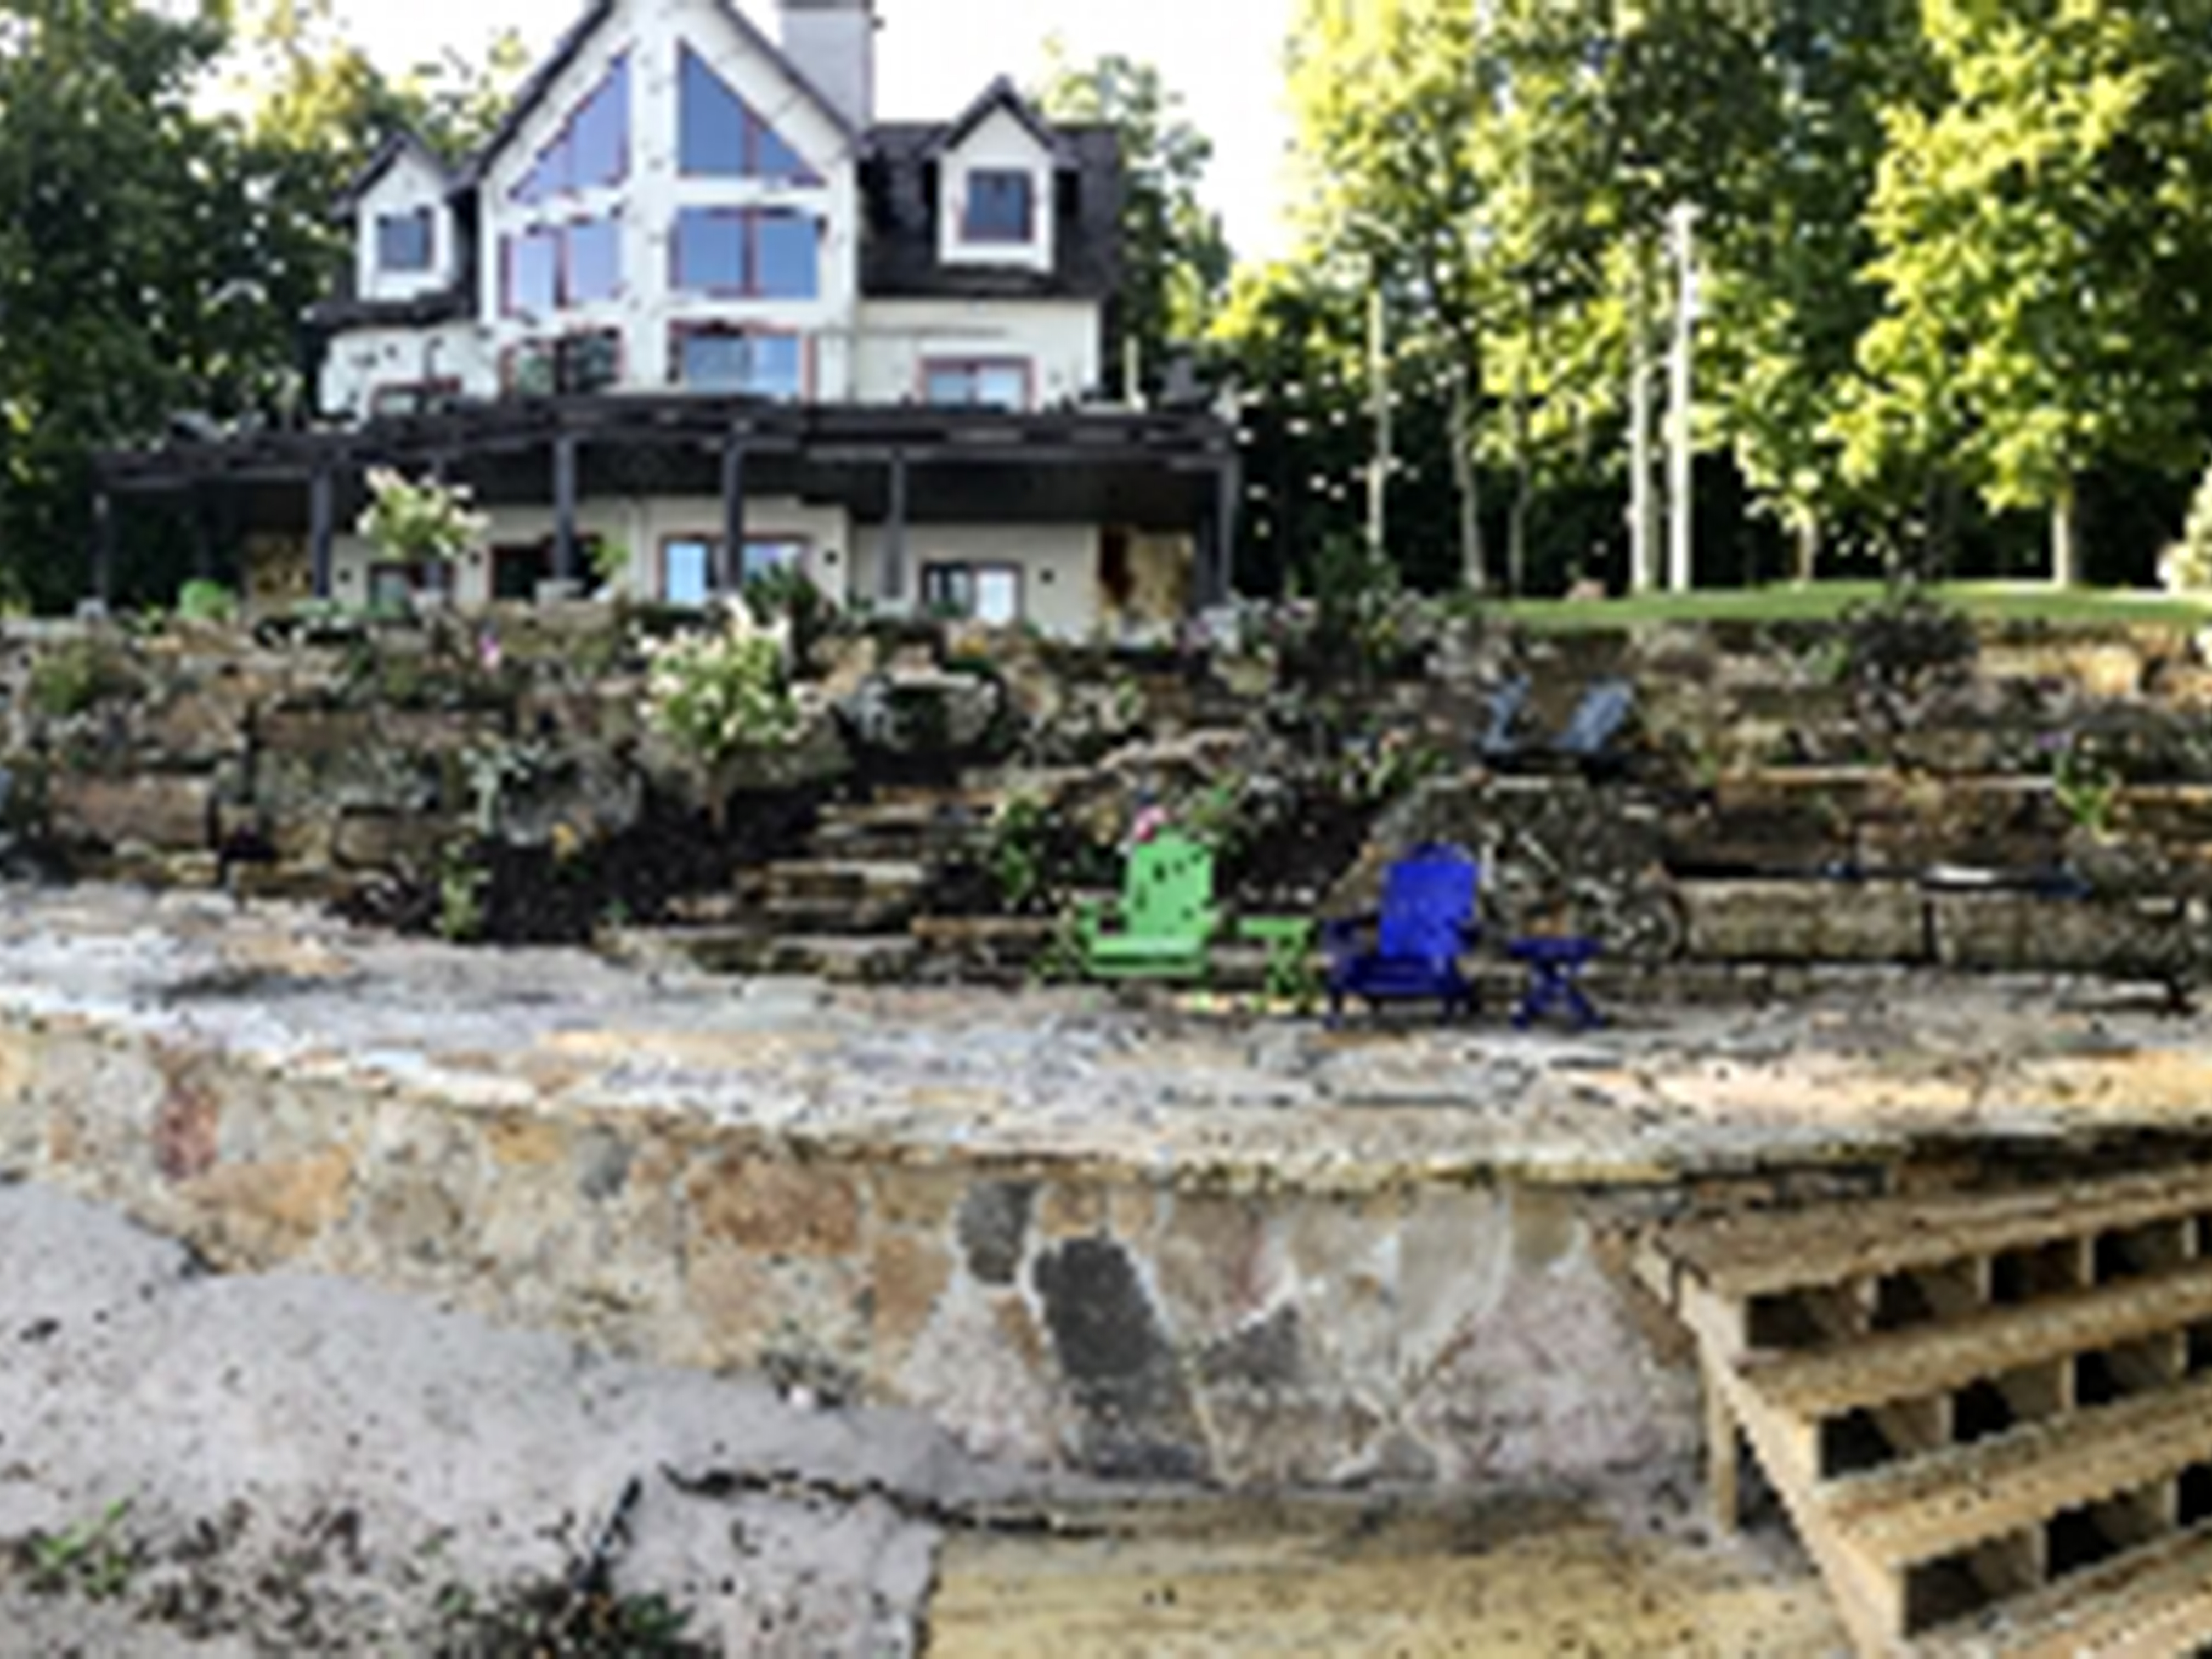 Natural Stone Seawall with Stairs, Boulder Terrace, Patio and Gardens